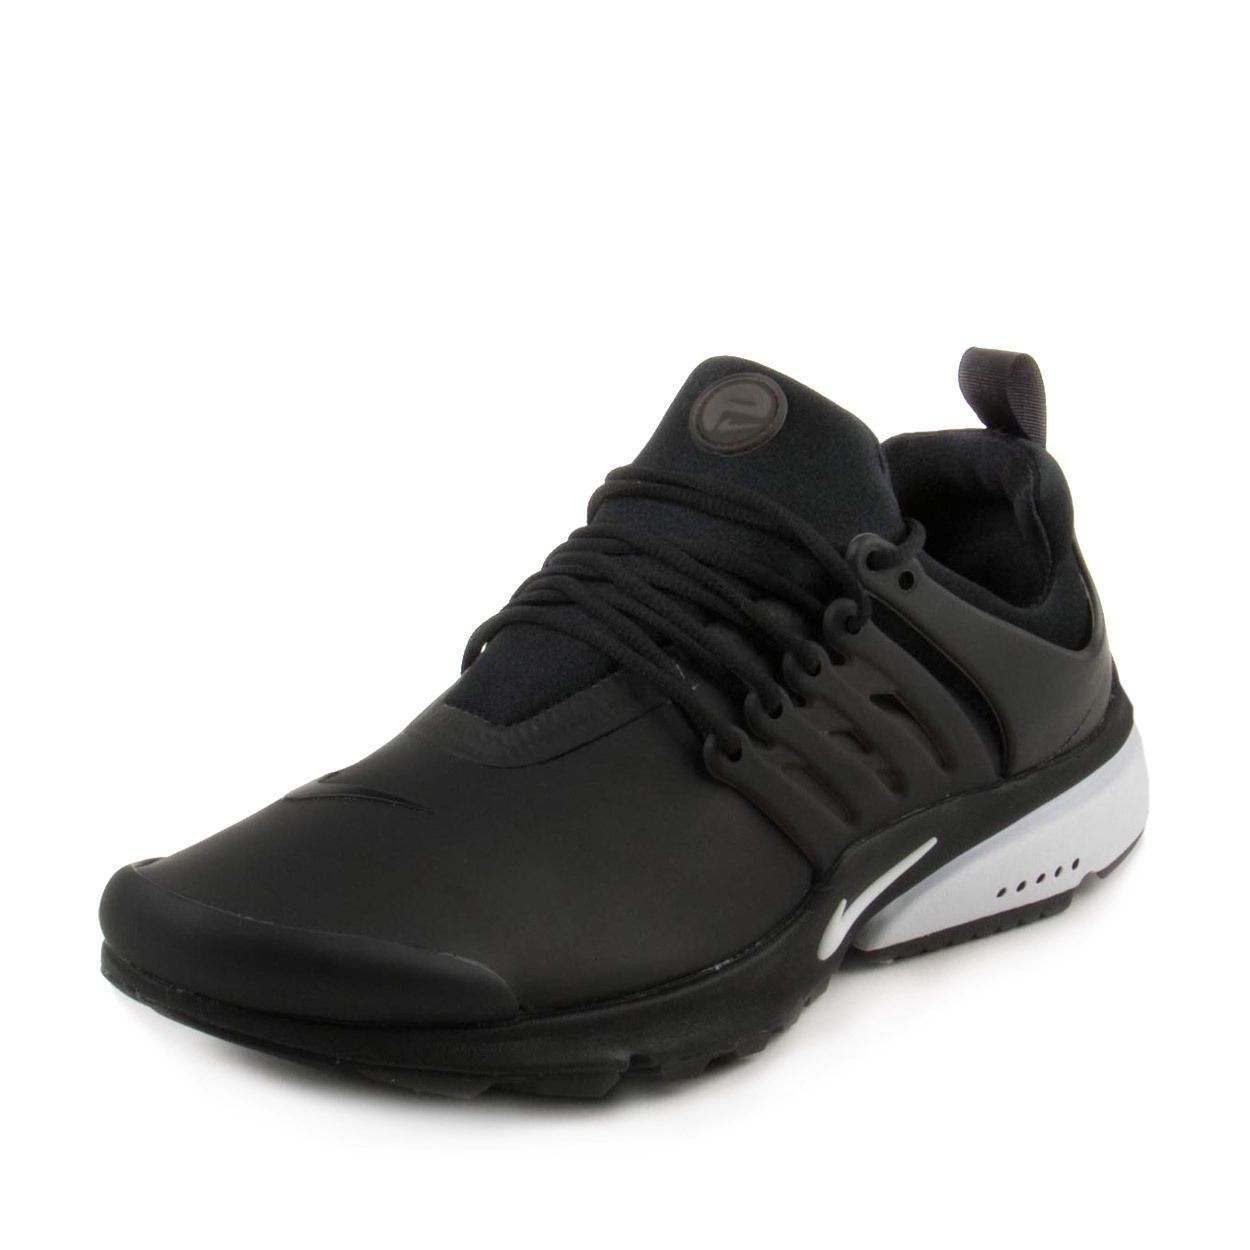 save off a826a fec1d ... new style nike mens air presto low utility 862749 003 b42e1 3ef44